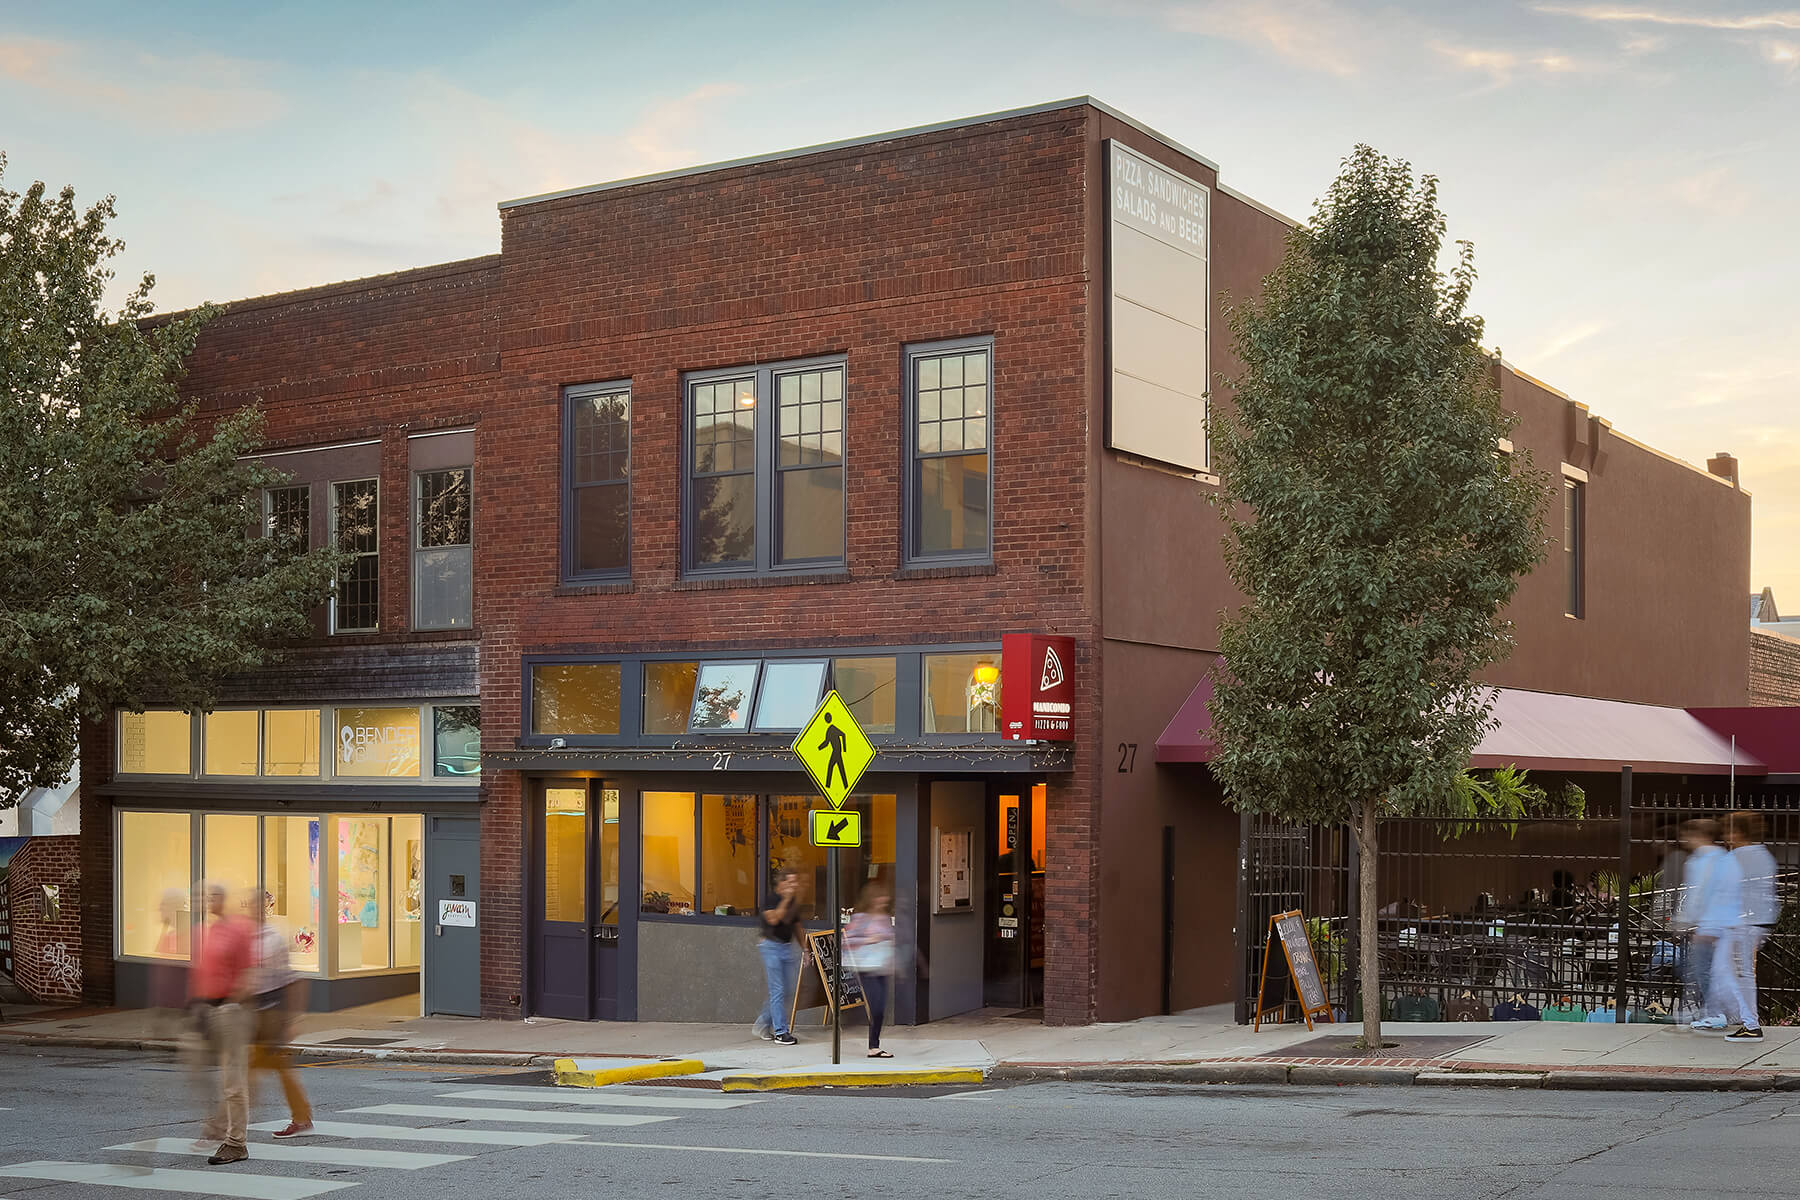 27 Biltmore restaurant in WNC architectural renovation project